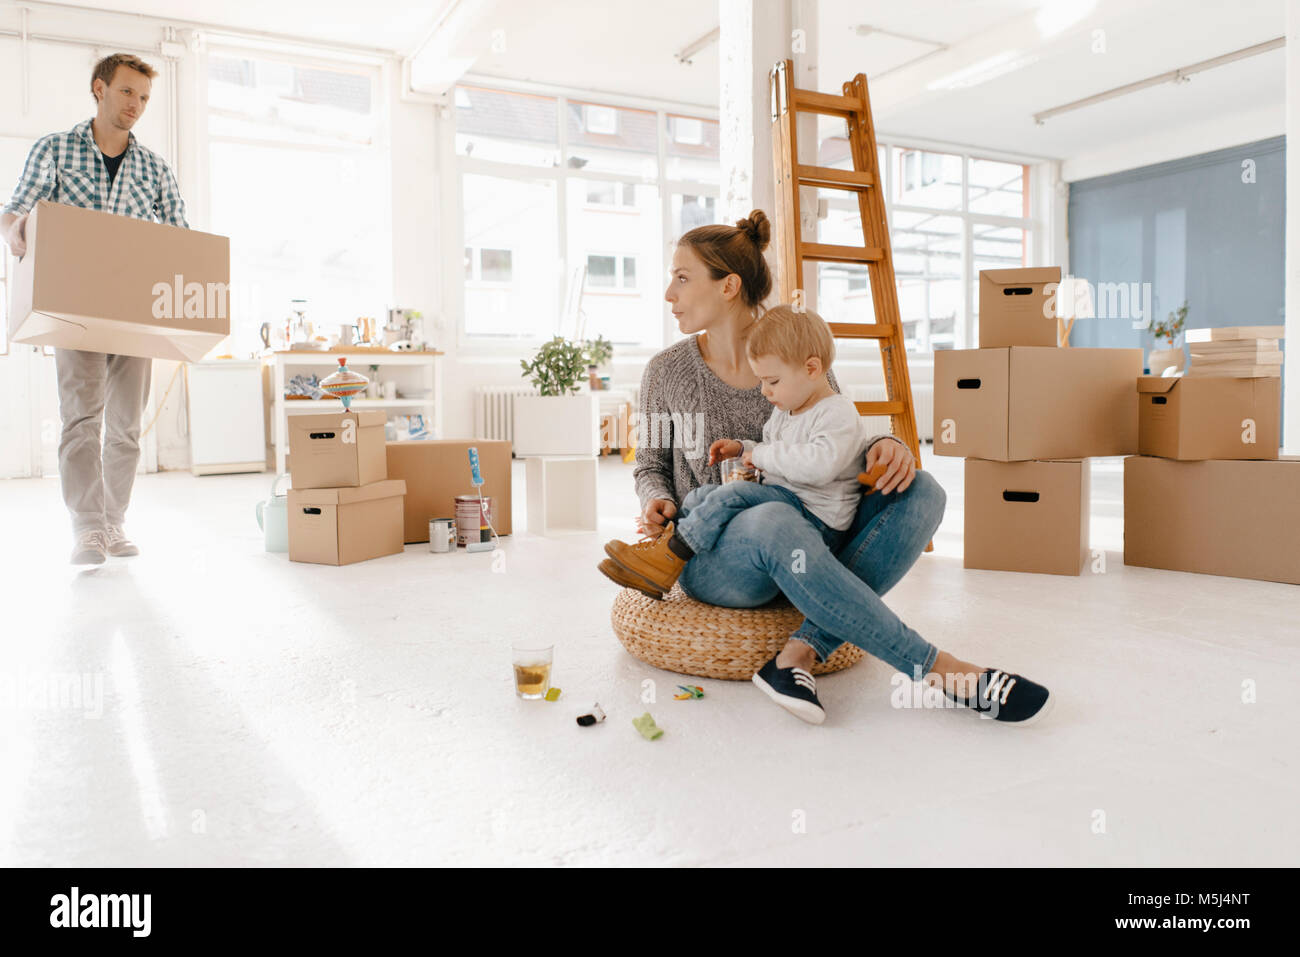 Family moving into new home with father carrying cardboard box - Stock Image